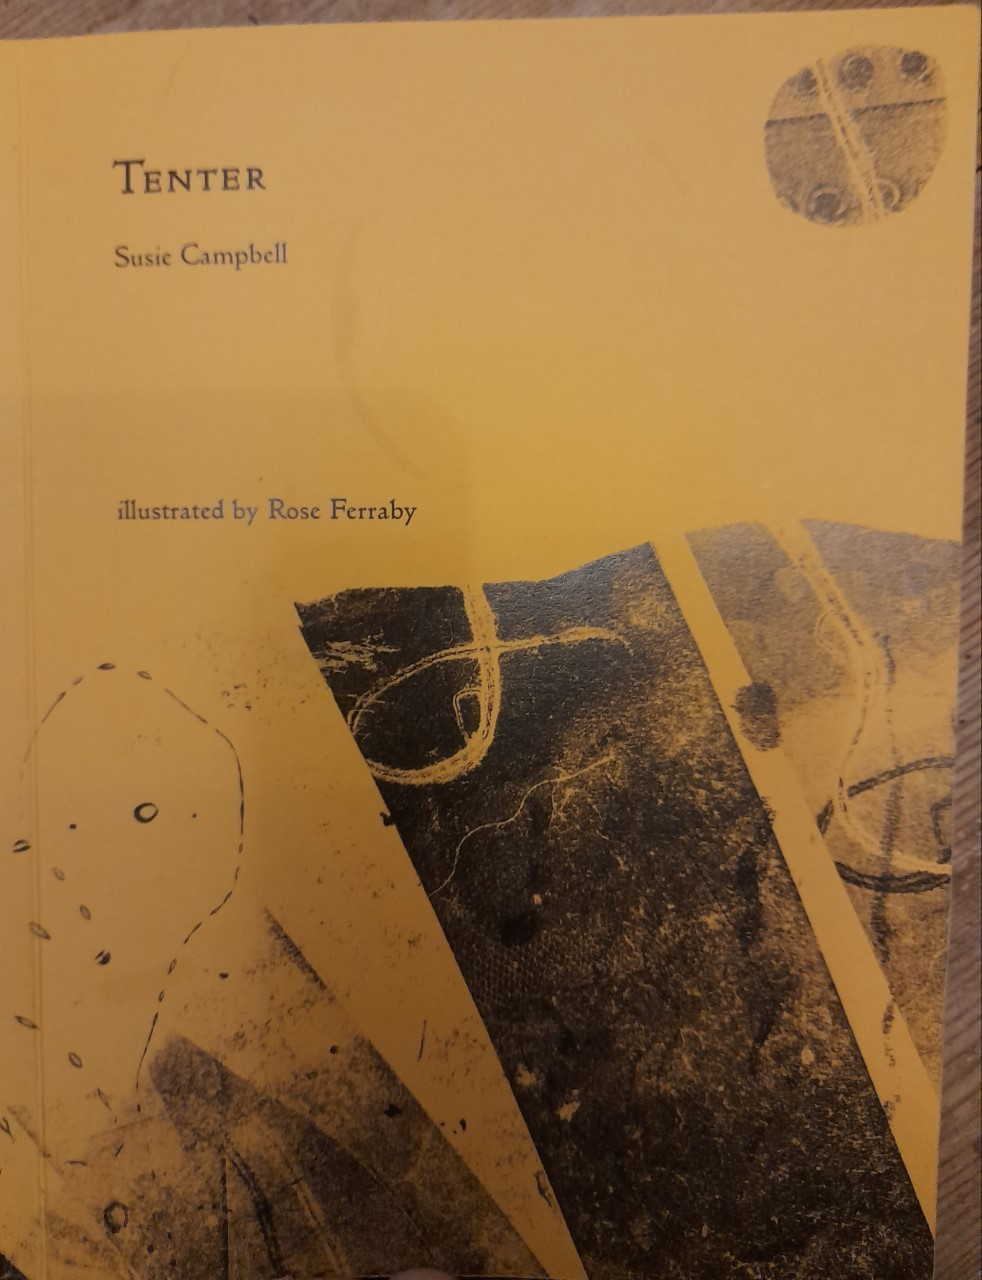 Front cover of pamphlet 'Tenter' by Susie Campbell , illustrated by Rose Ferraby. Black text on a yellow background, featuring an abstract monoprint illustration in black ink..